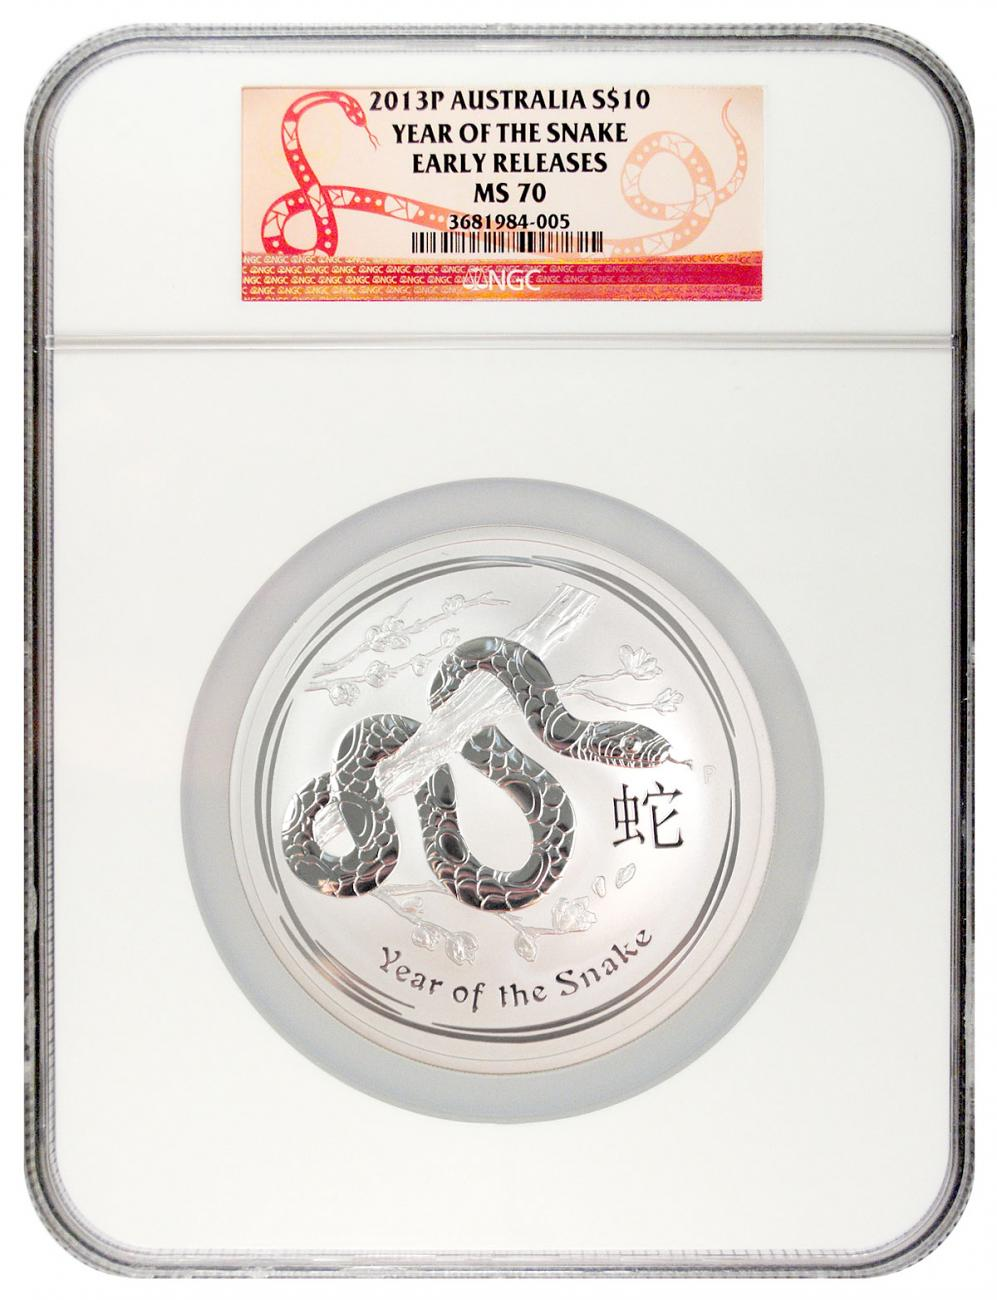 2013-P Australia Year of the Snake 10 oz Silver Lunar (Series 2) $10 Coin NGC MS70 ER (Snake Label)